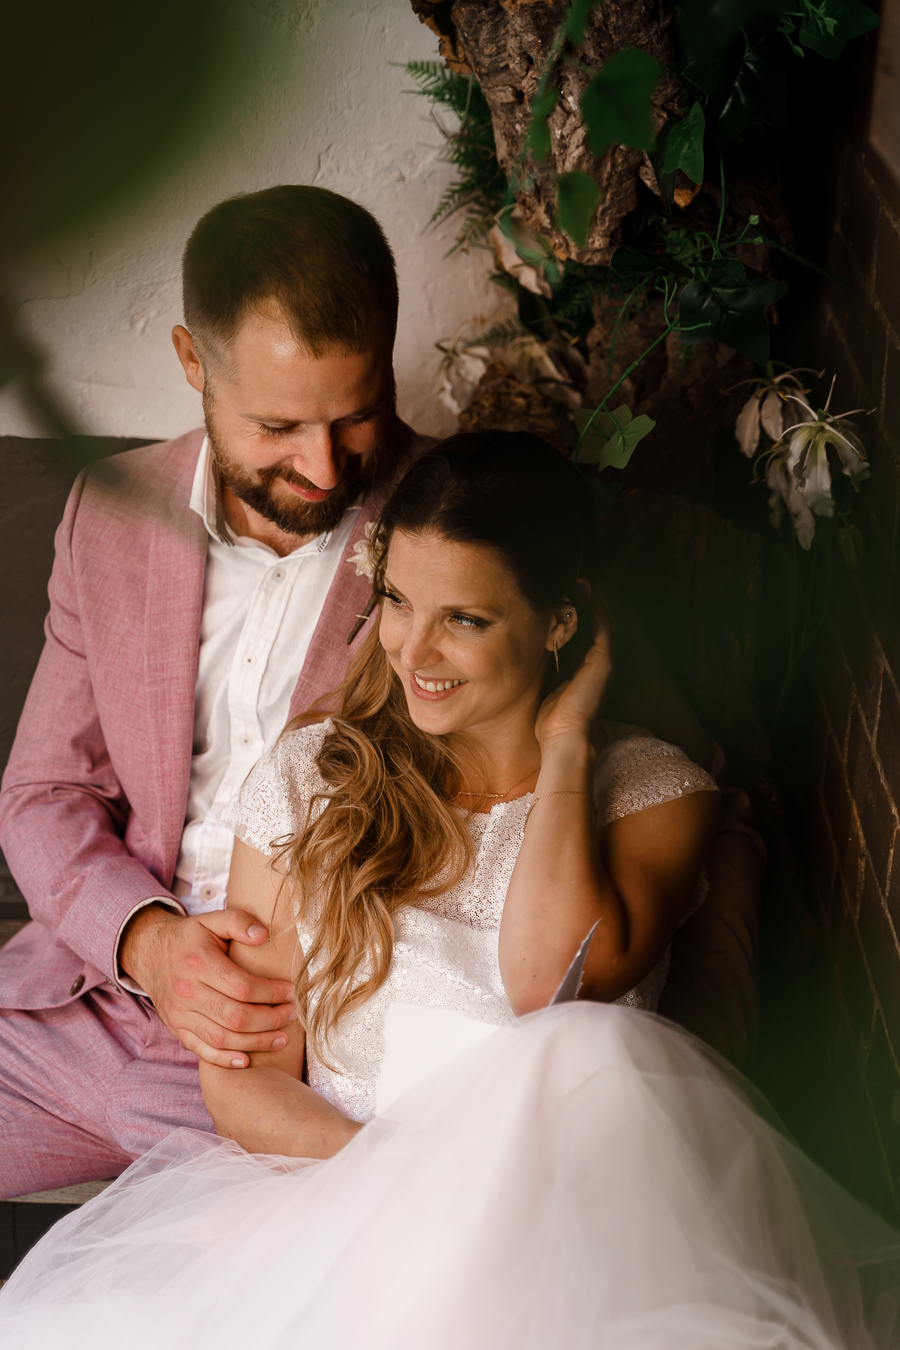 A loved-up Winchester city elopement - with adorable dogs! Photographer credit Katherine and her Camera (35)